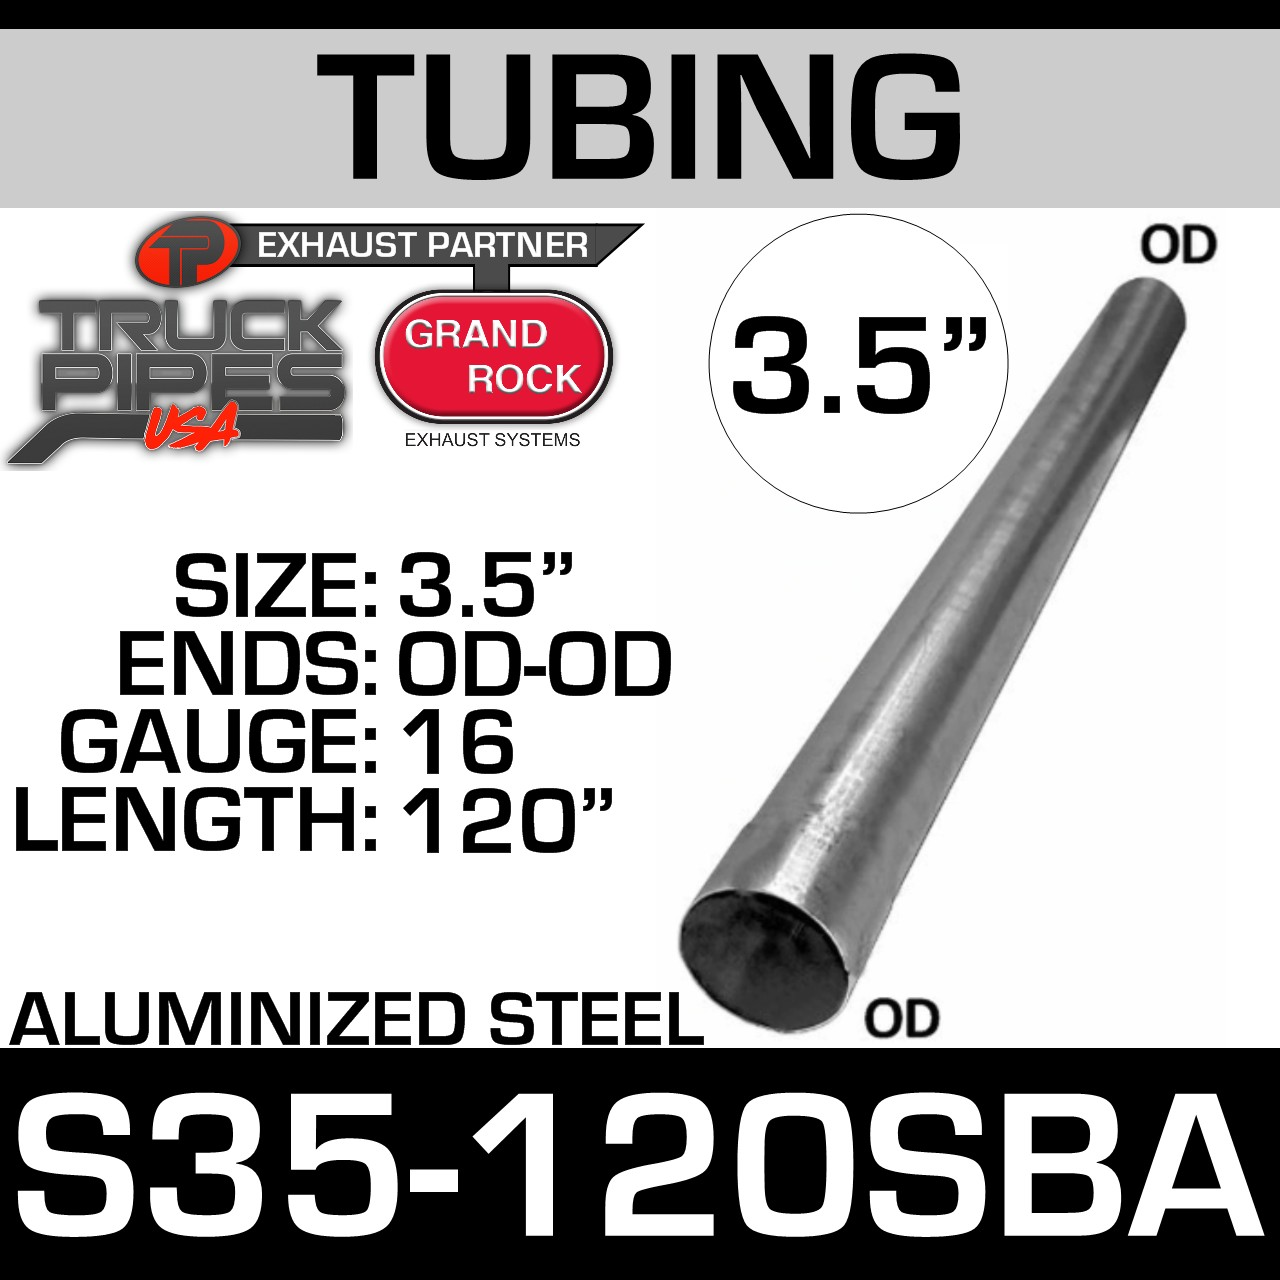 s35-120sba-aluminized-steel-exhaust-tubing-3-5-inch-diameter-od-end-120-inches-long.jpg